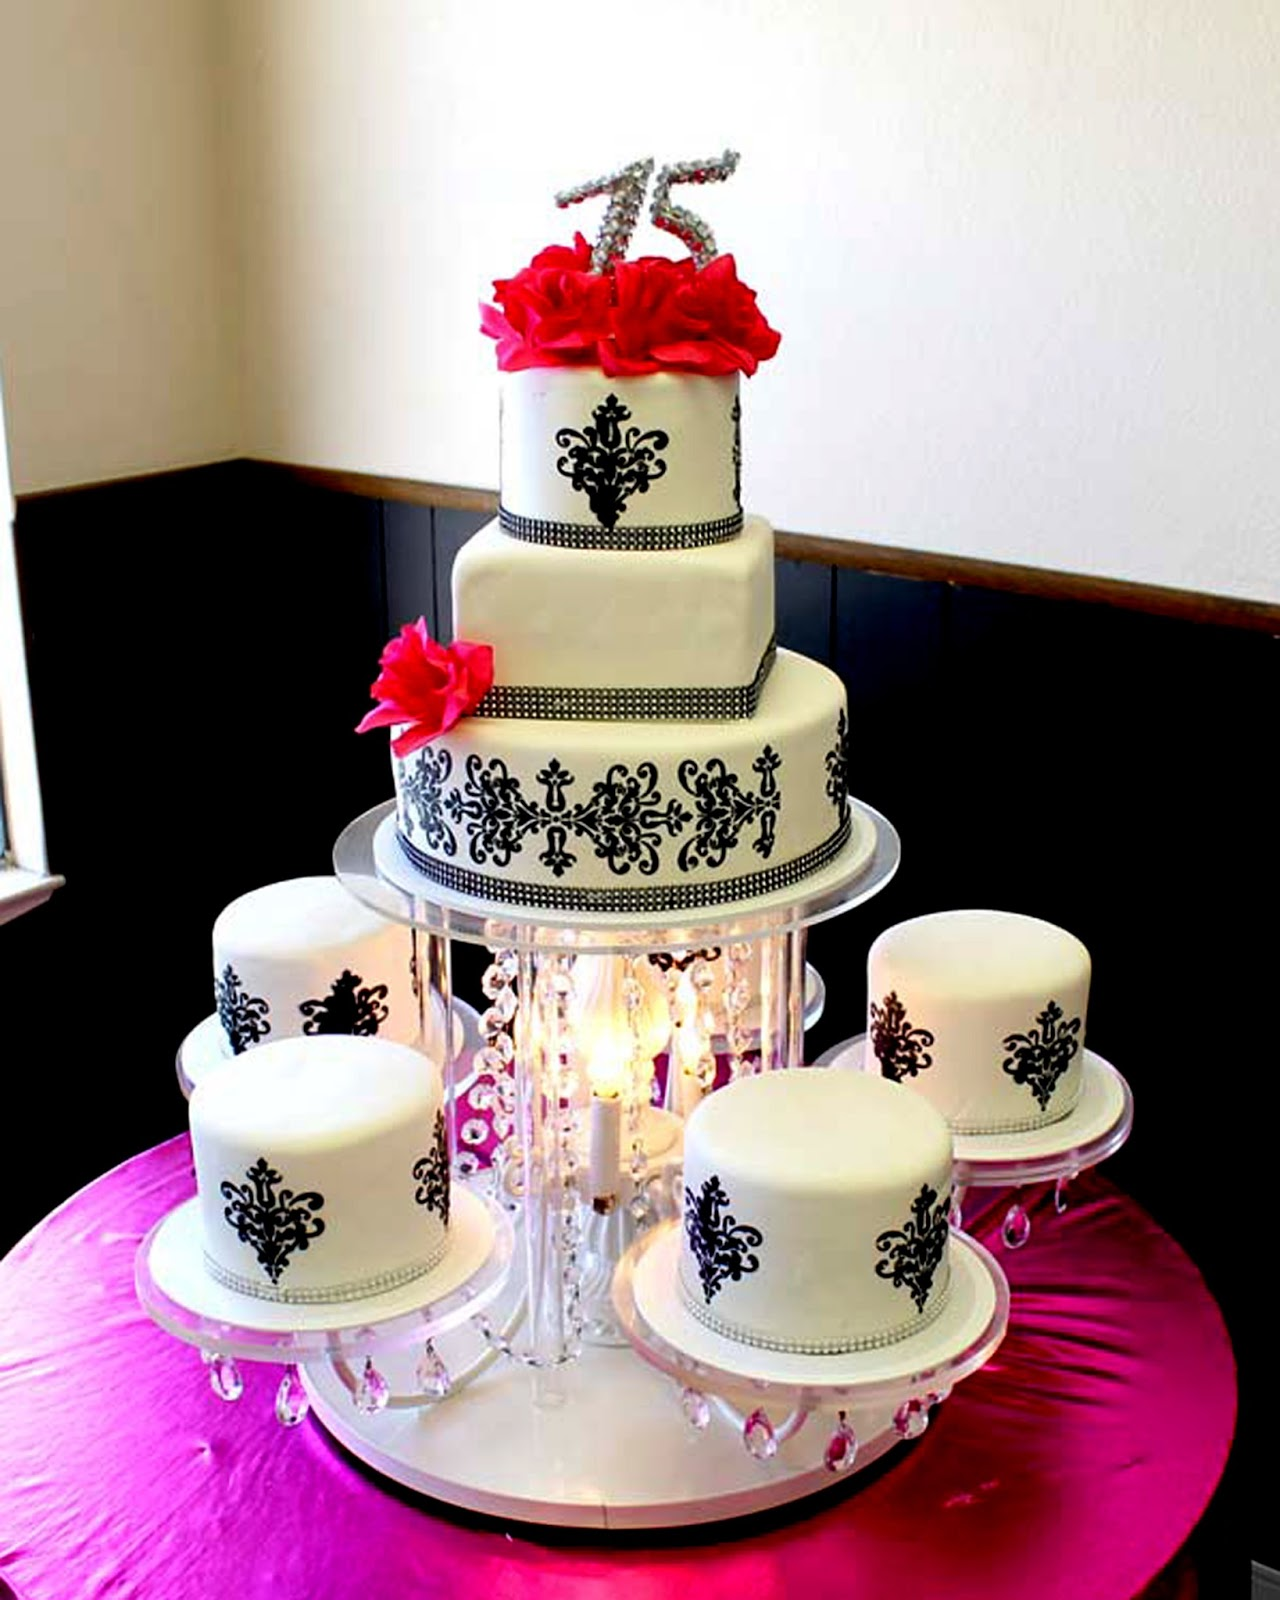 Hectors custom cakes chandelier cake stand posted by hectors custom cakes edible images at 104 pm arubaitofo Image collections